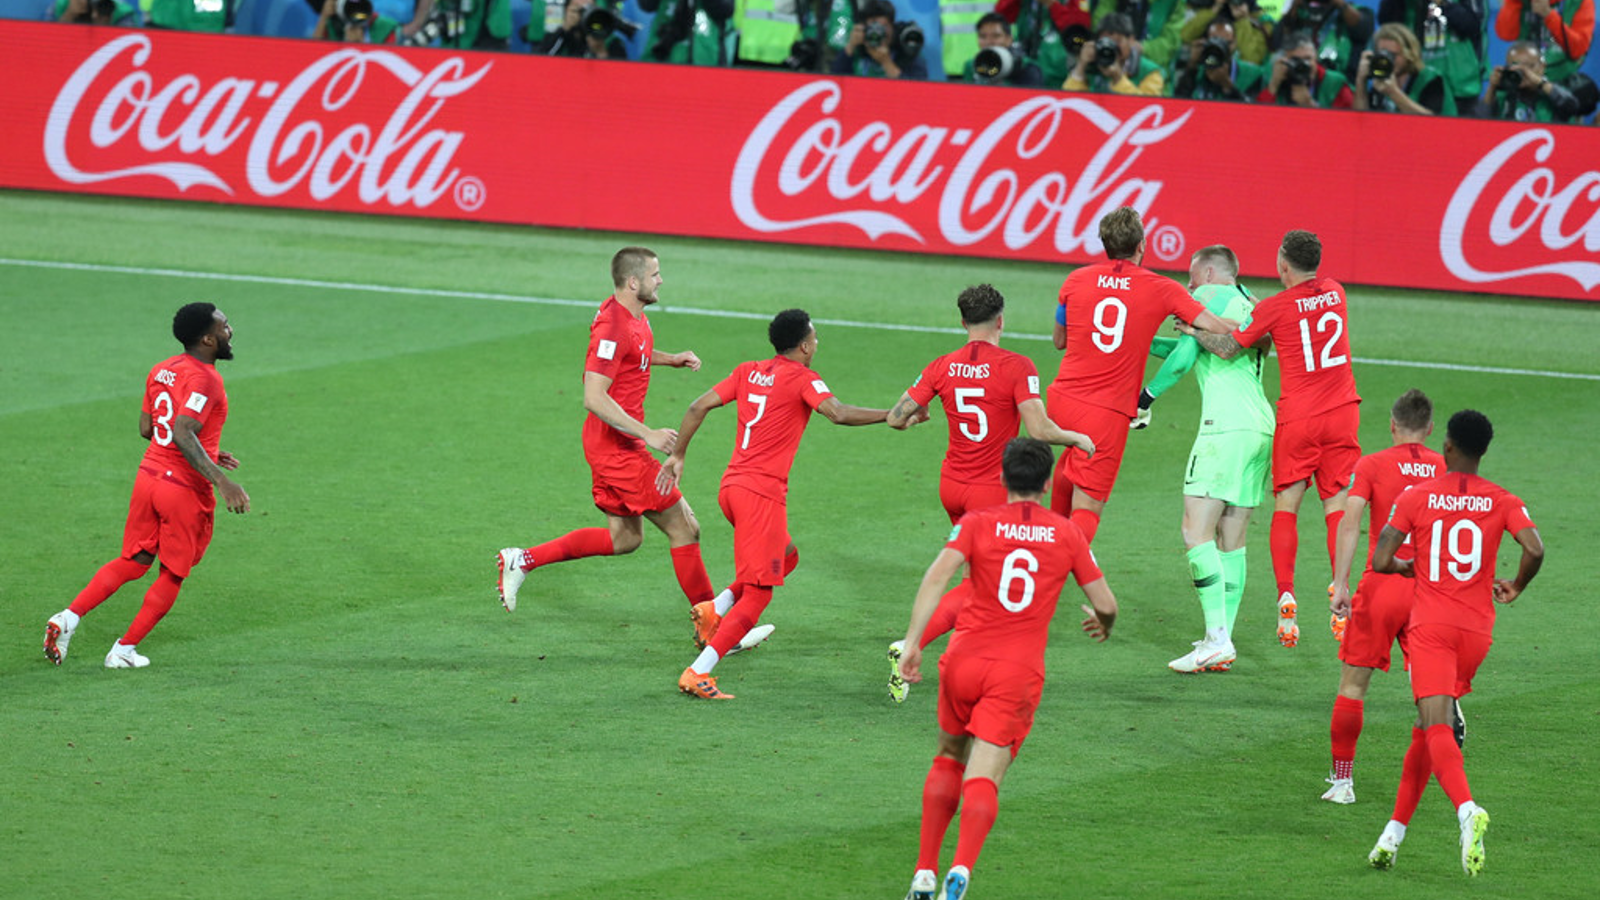 Coca-Cola adverts appear on electronic billboards as England qualify for the quarter finals at the World Cup.